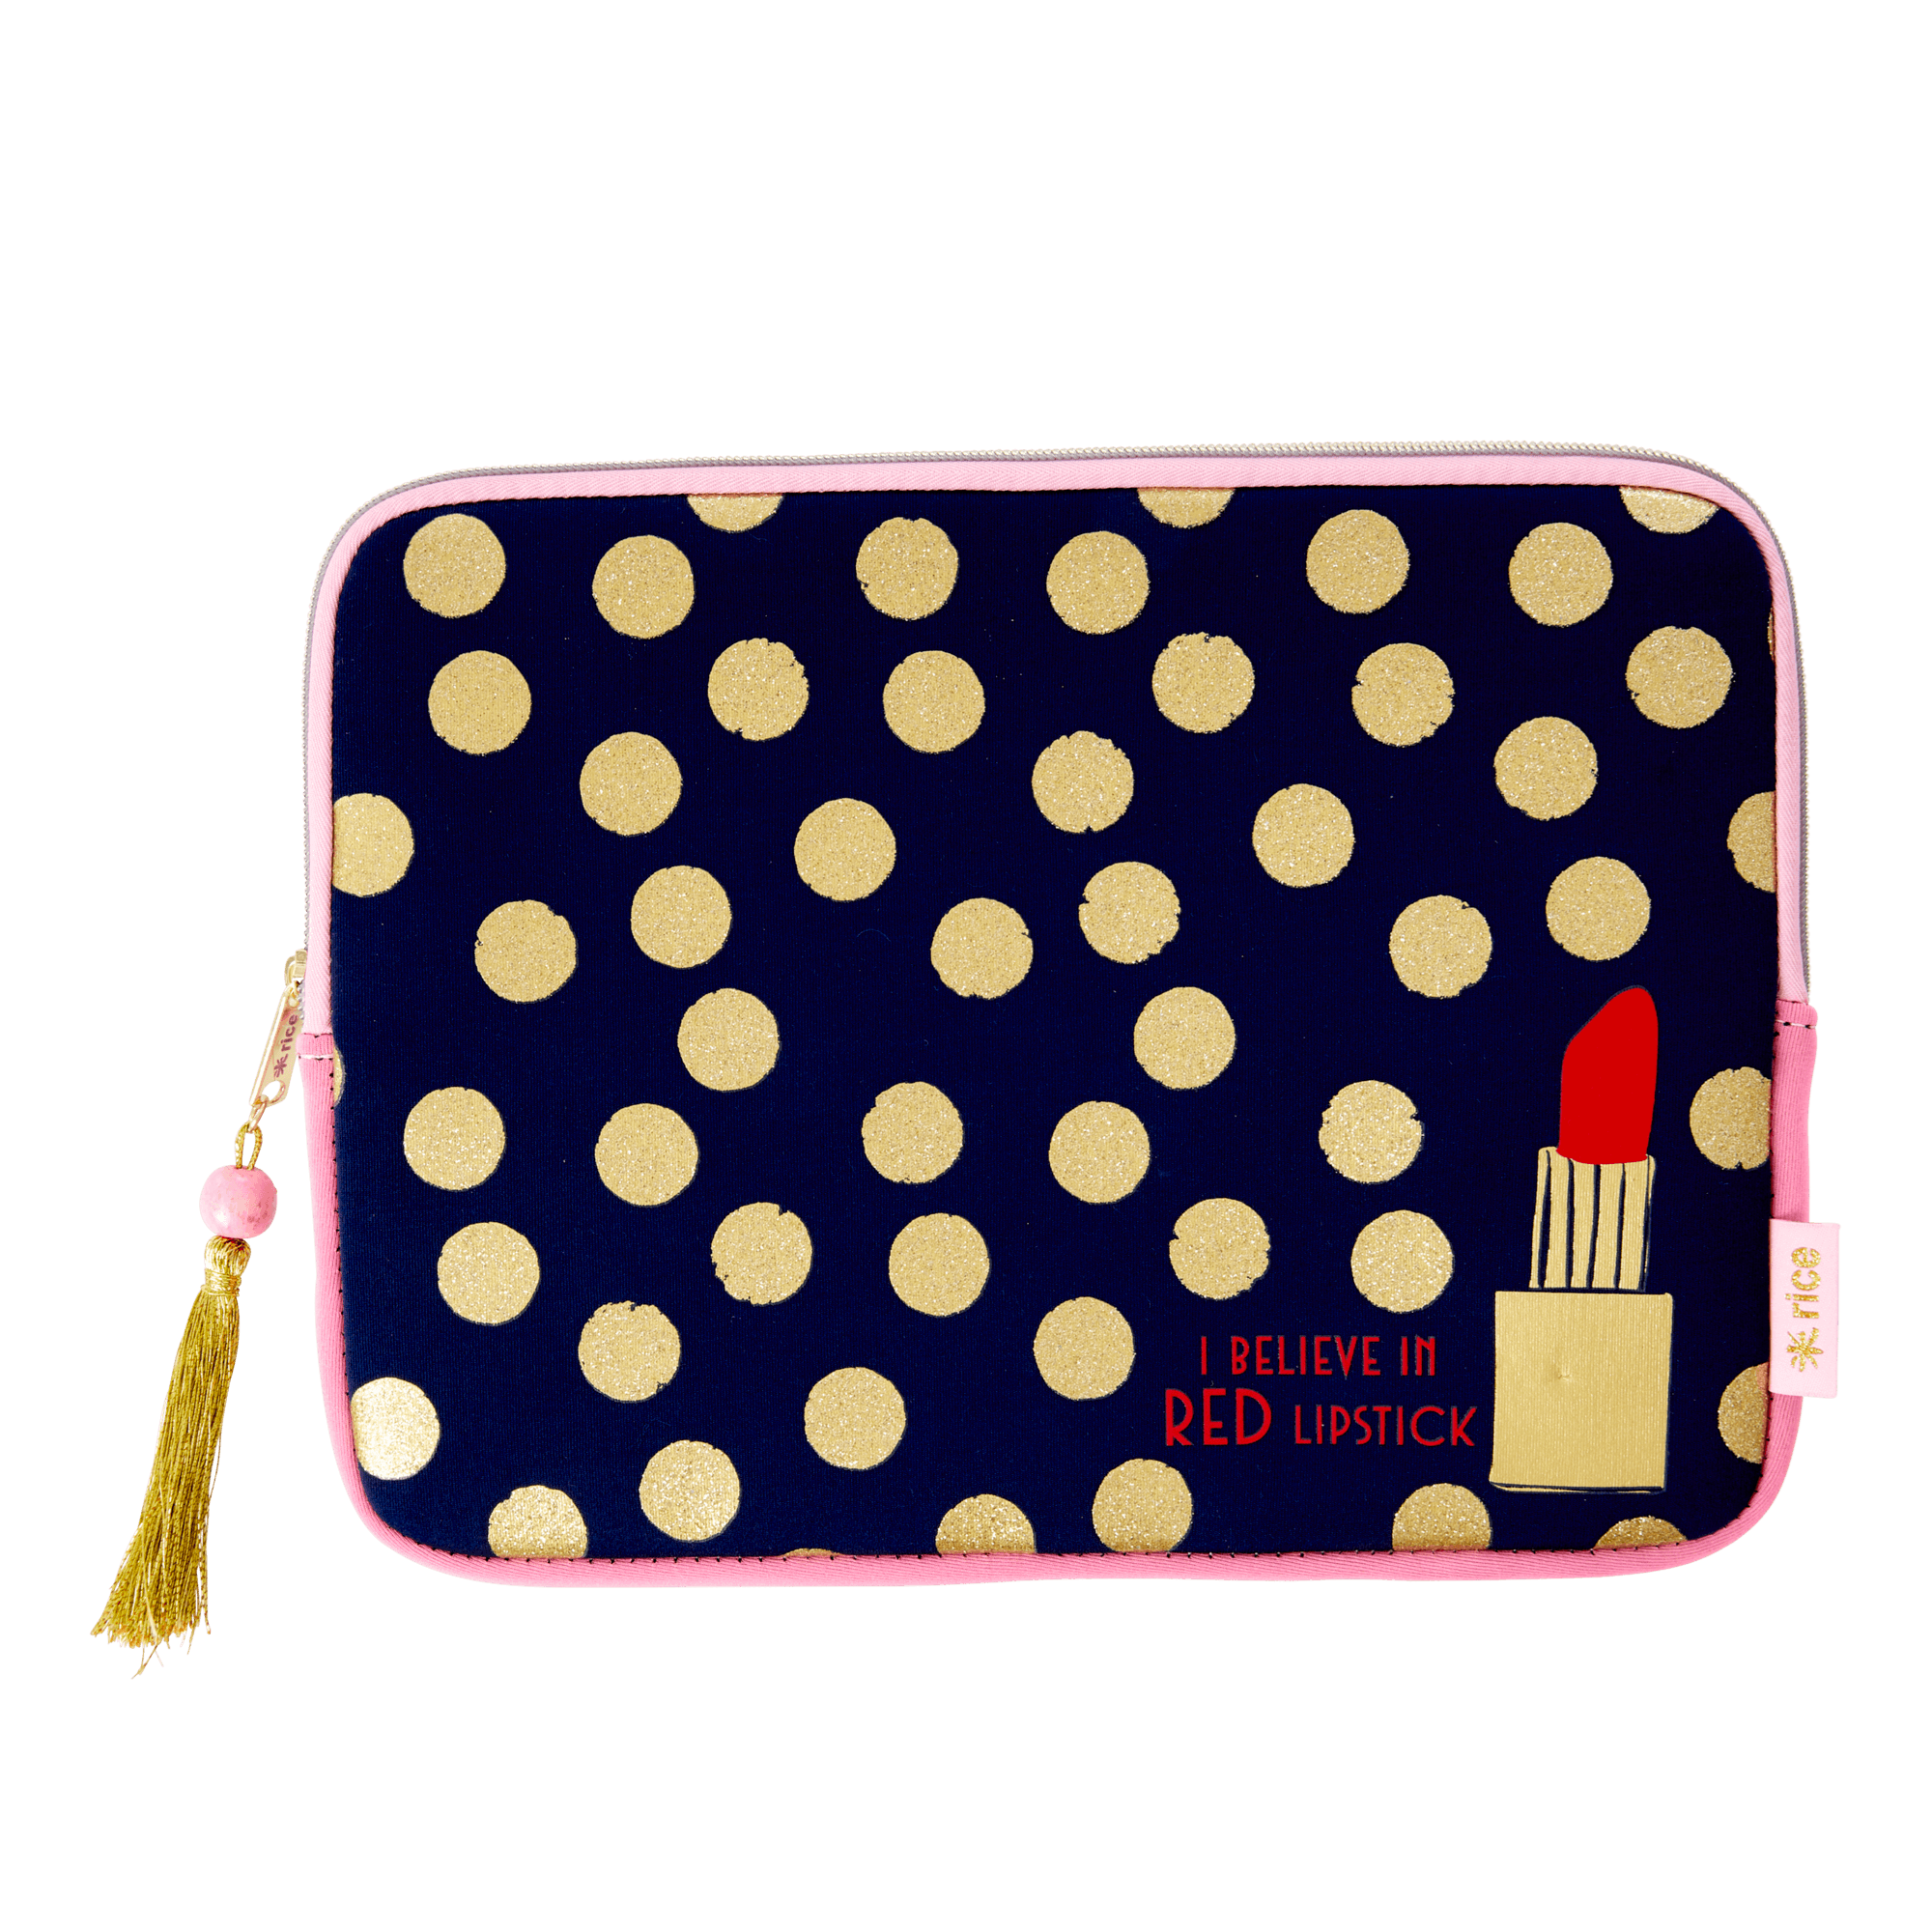 Rice -Tablet Sleeve For 12 Inch - Dark Blue w. Gold Dots and Lipstick Print